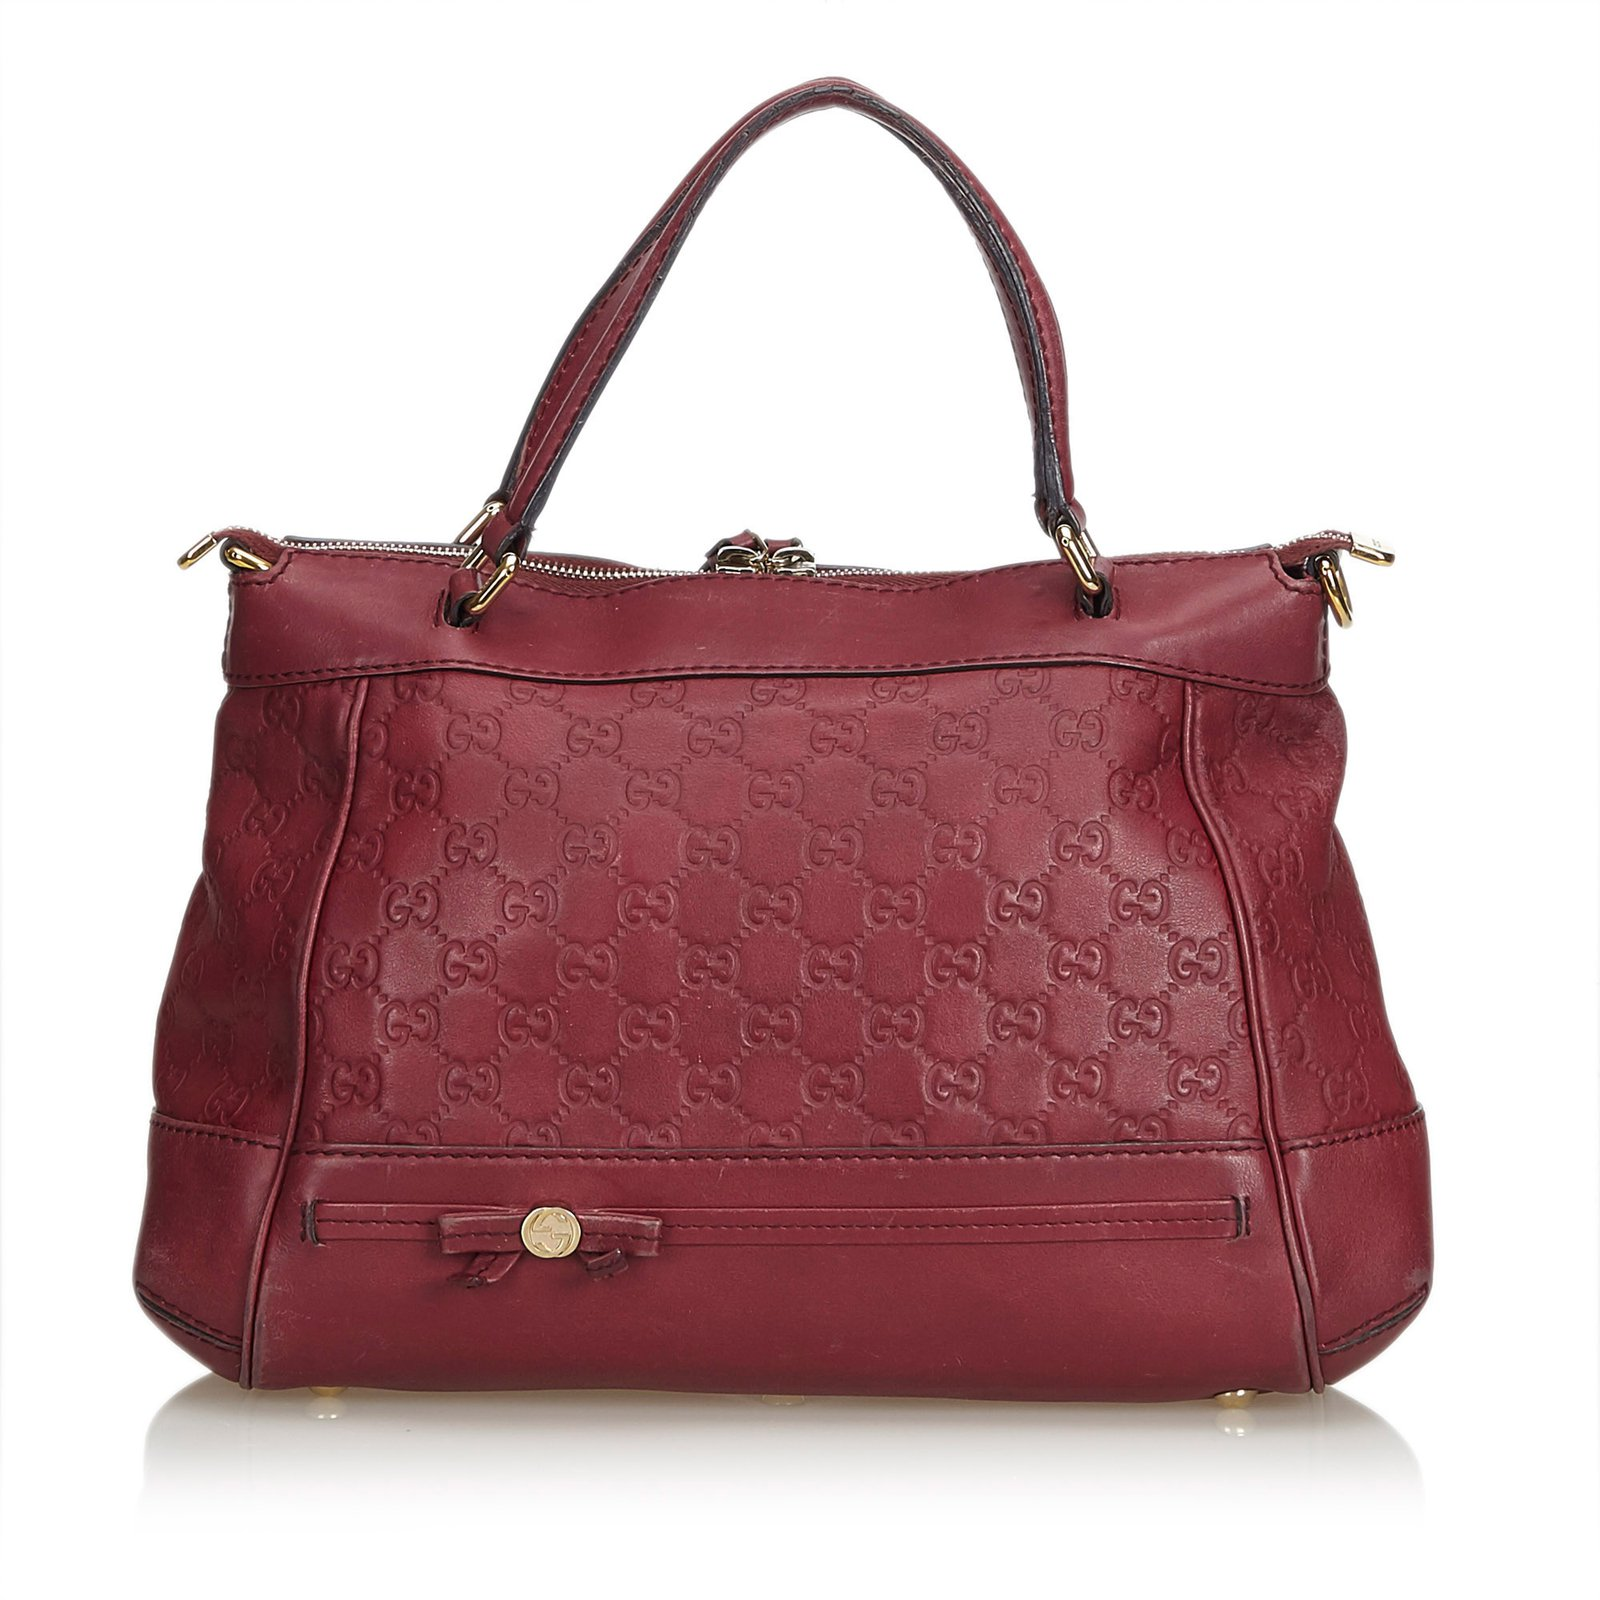 ff29ddfe9 Gucci Guccissima Leather Mayfair Handbag Handbags Leather,Other Red  ref.99236